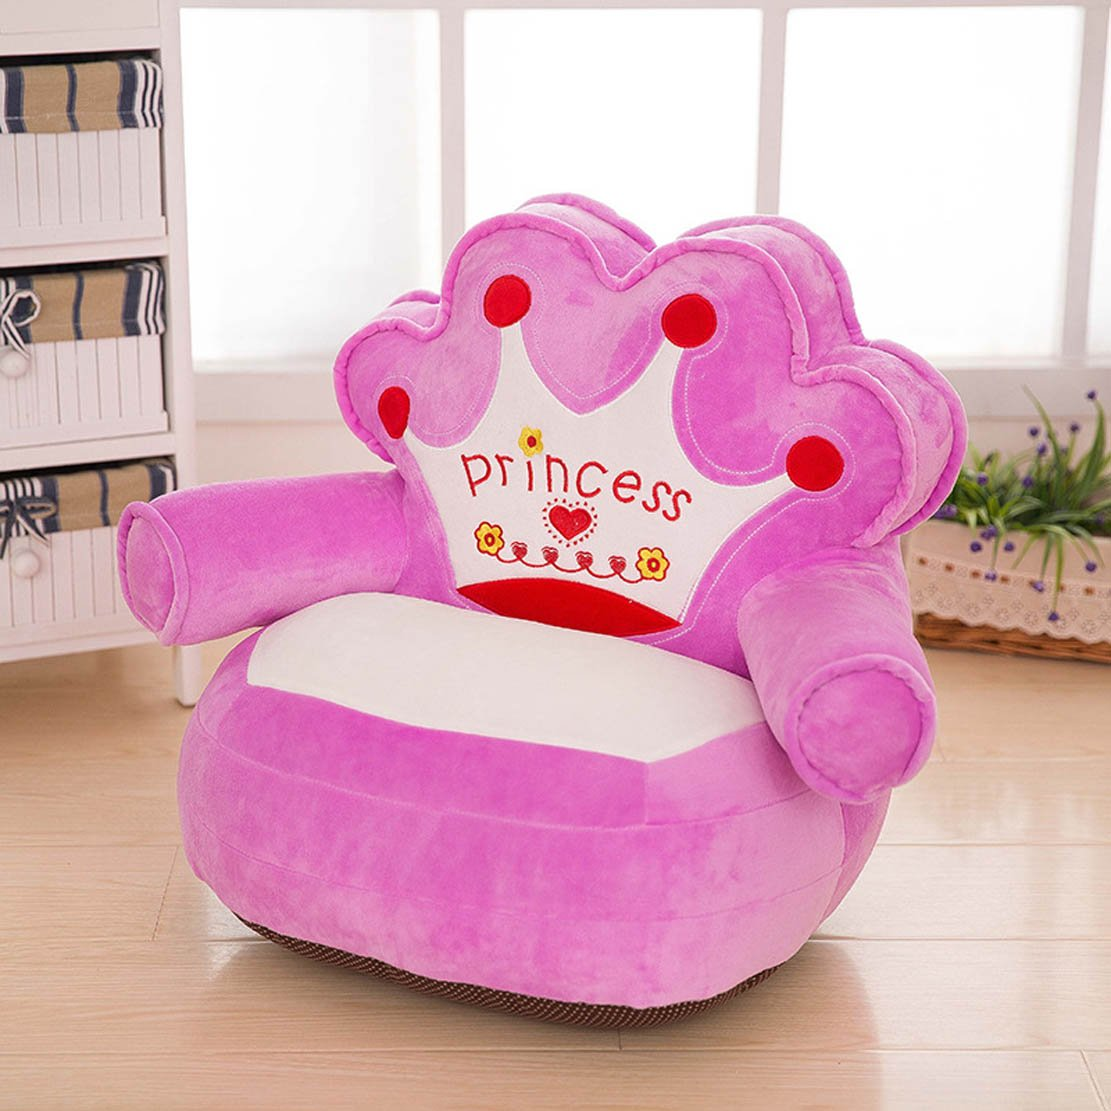 Top 9 Best Princess Chair for Toddlers Reviews in 2020 4